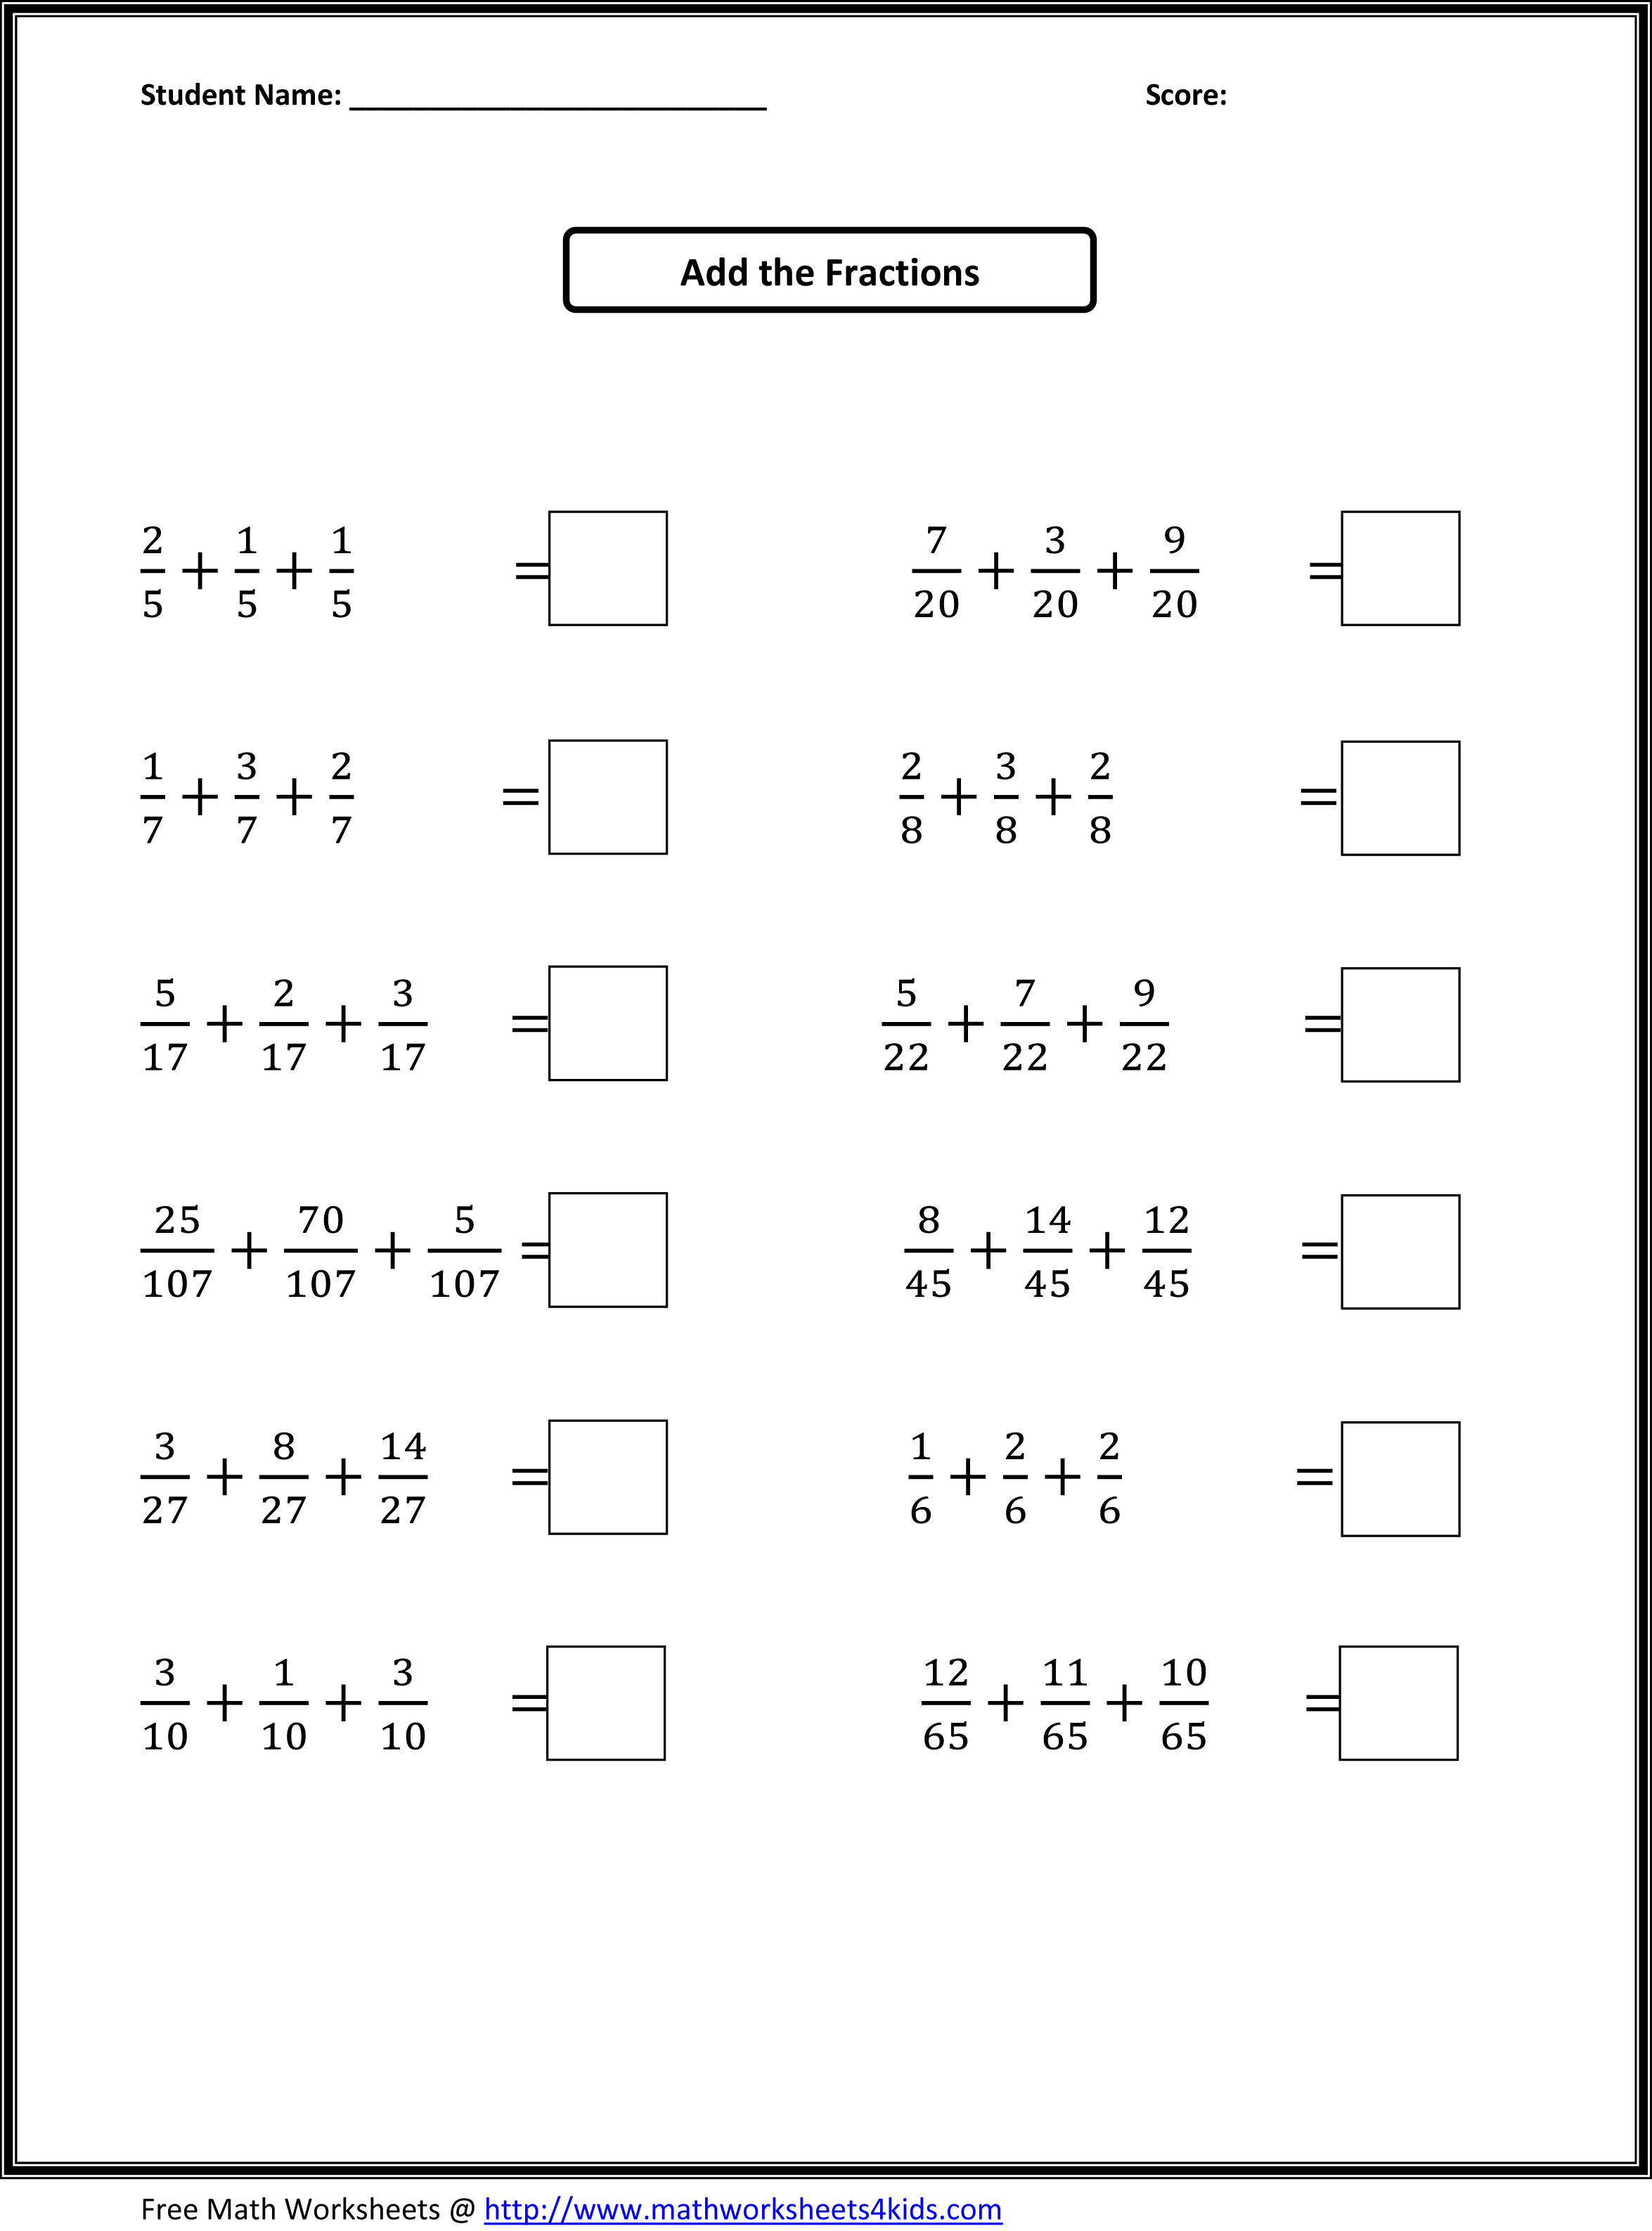 math worksheet : printable math worksheets 4th 5th grade  sheets : Saxon Math Worksheets 4th Grade